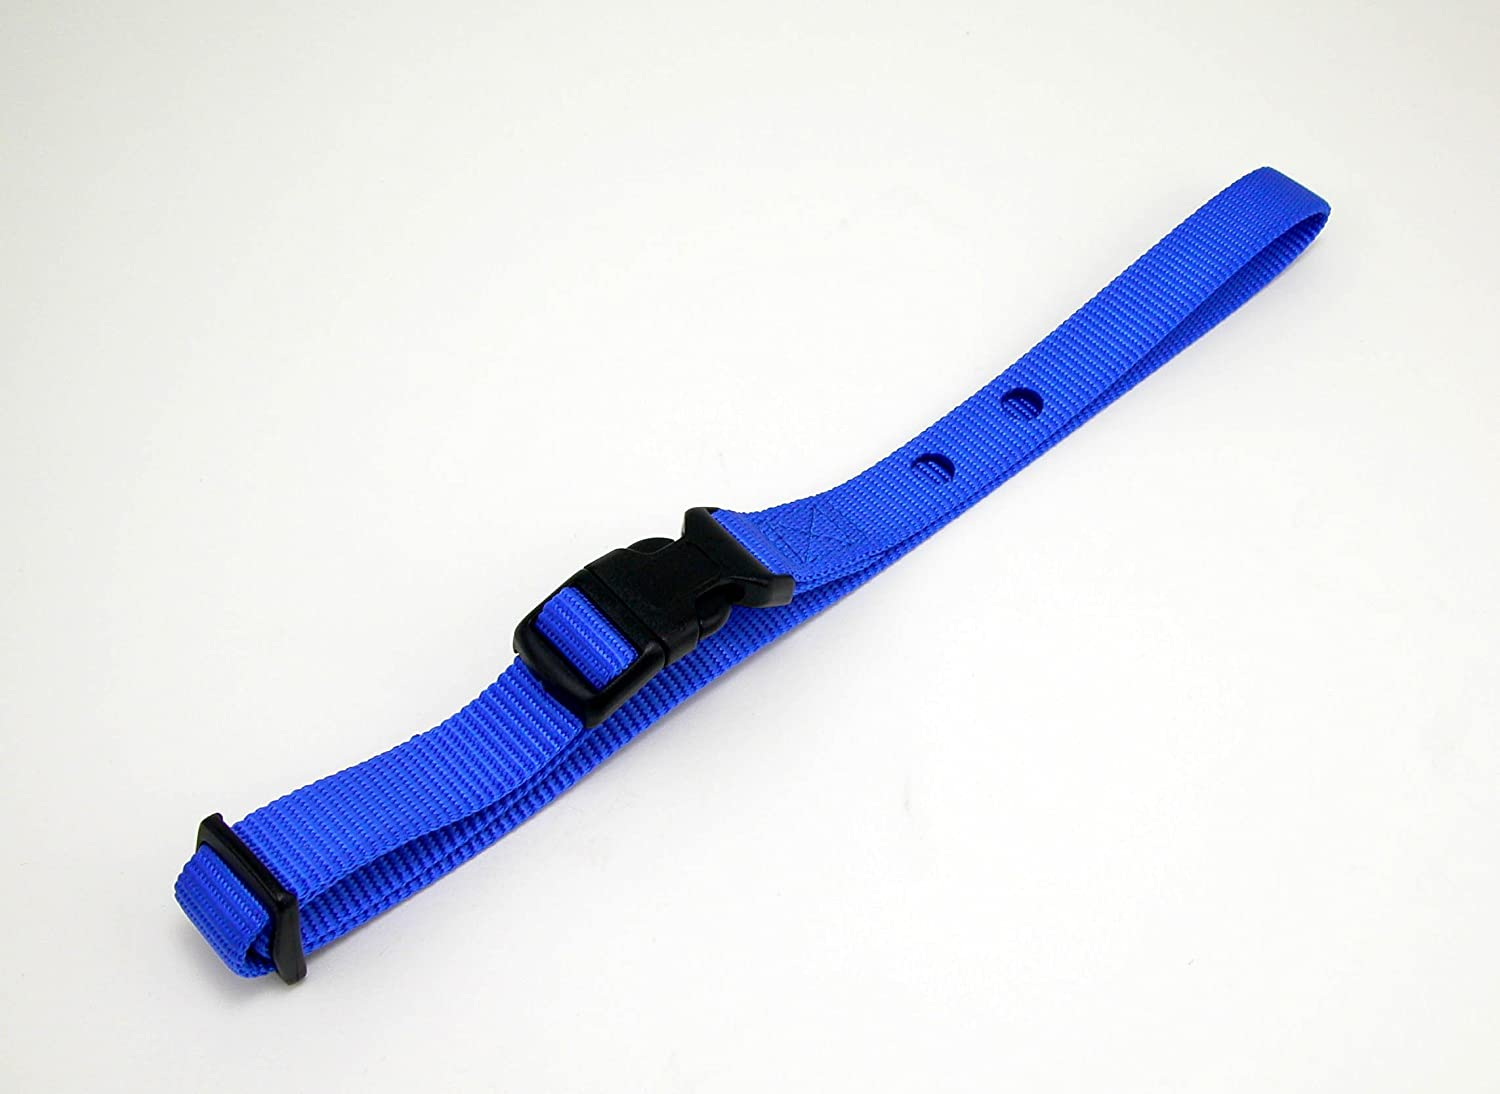 Dog Fence Reciever Heavy Duty Replacement Strap Blue by Tuff